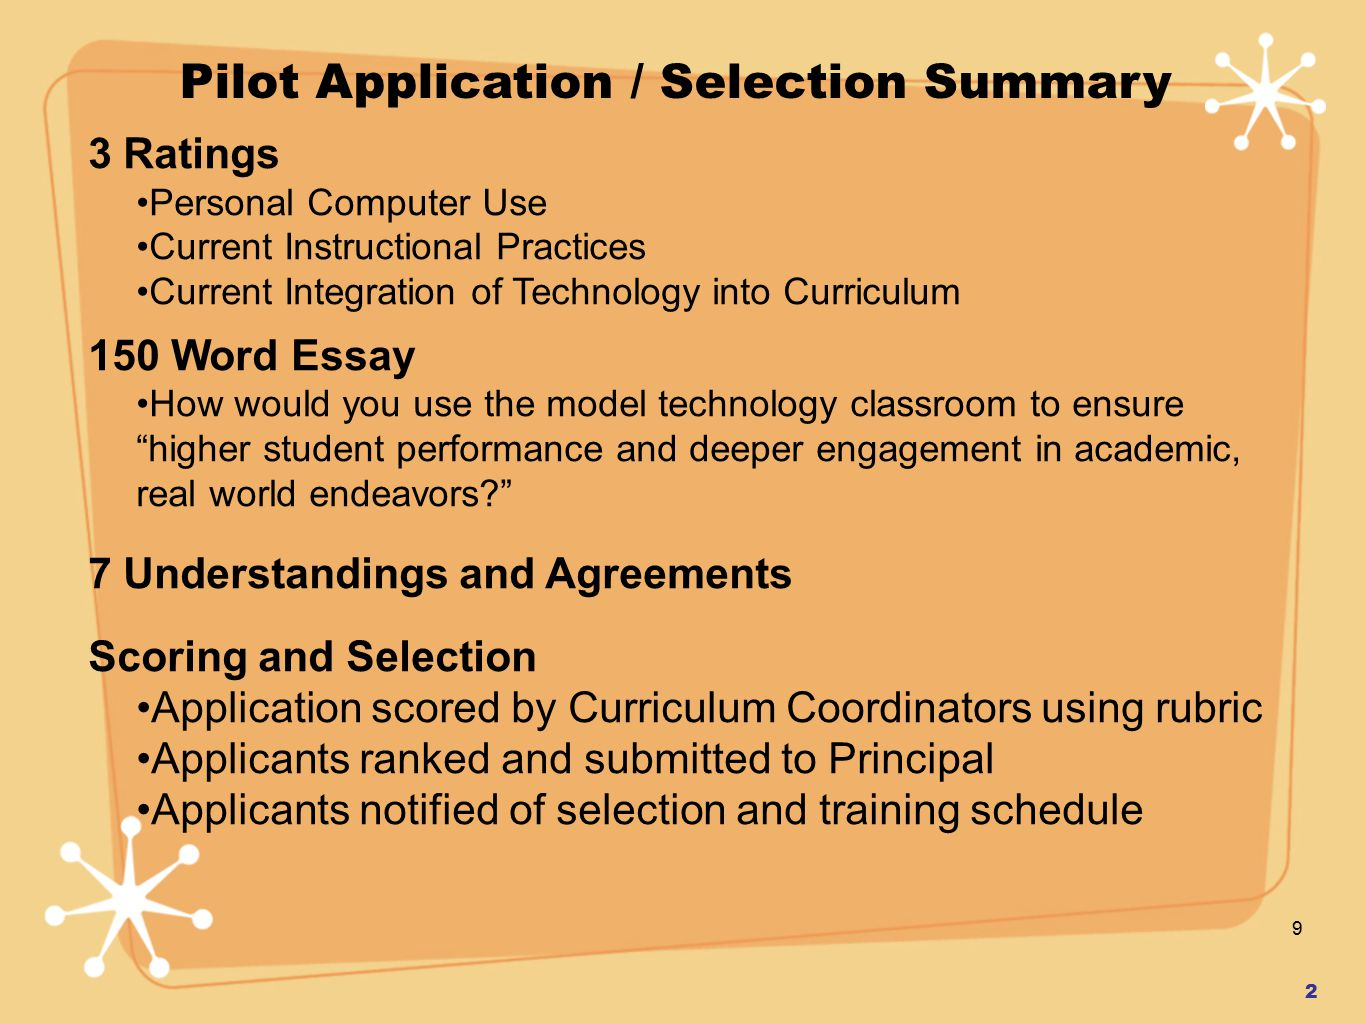 9 3 Ratings Personal Computer Use Current Instructional Practices Current Integration of Technology into Curriculum 150 Word Essay How would you use the model technology classroom to ensure higher student performance and deeper engagement in academic, real world endeavors? 7 Understandings and Agreements Scoring and Selection Application scored by Curriculum Coordinators using rubric Applicants ranked and submitted to Principal Applicants notified of selection and training schedule 2 Pilot Application / Selection Summary